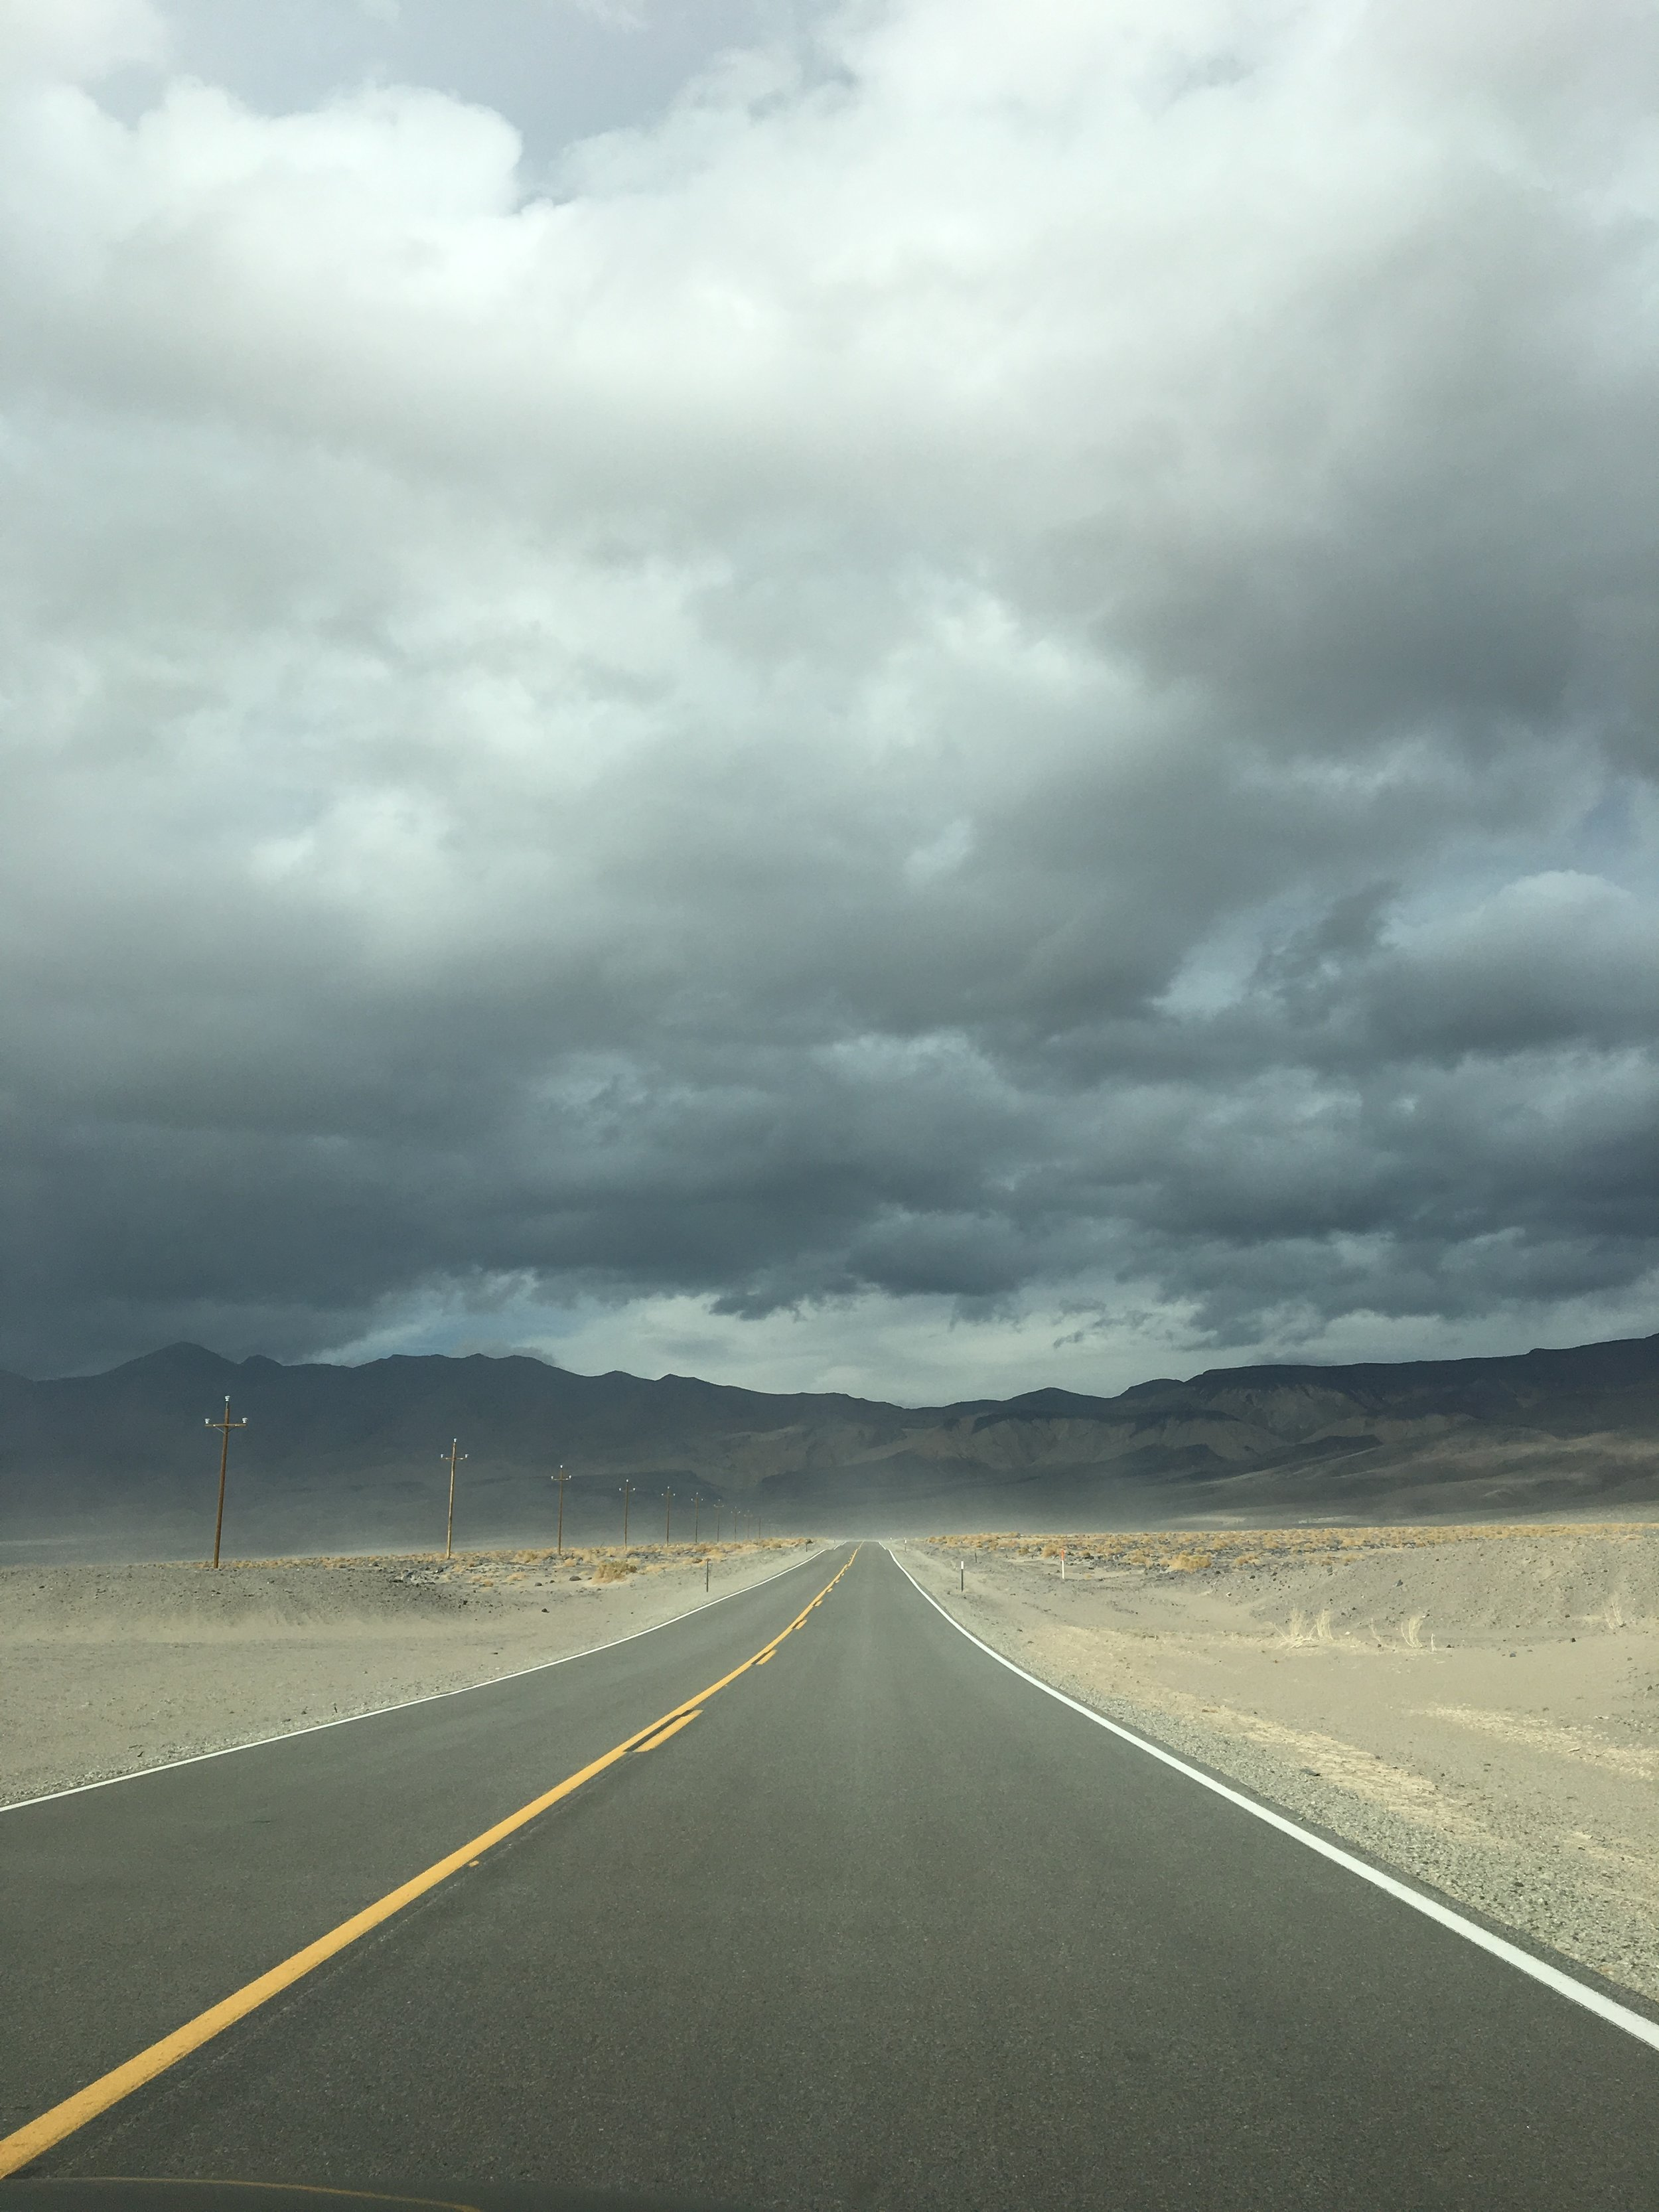 The sandstorm we drove through on our way to Death Valley from Yosemite!